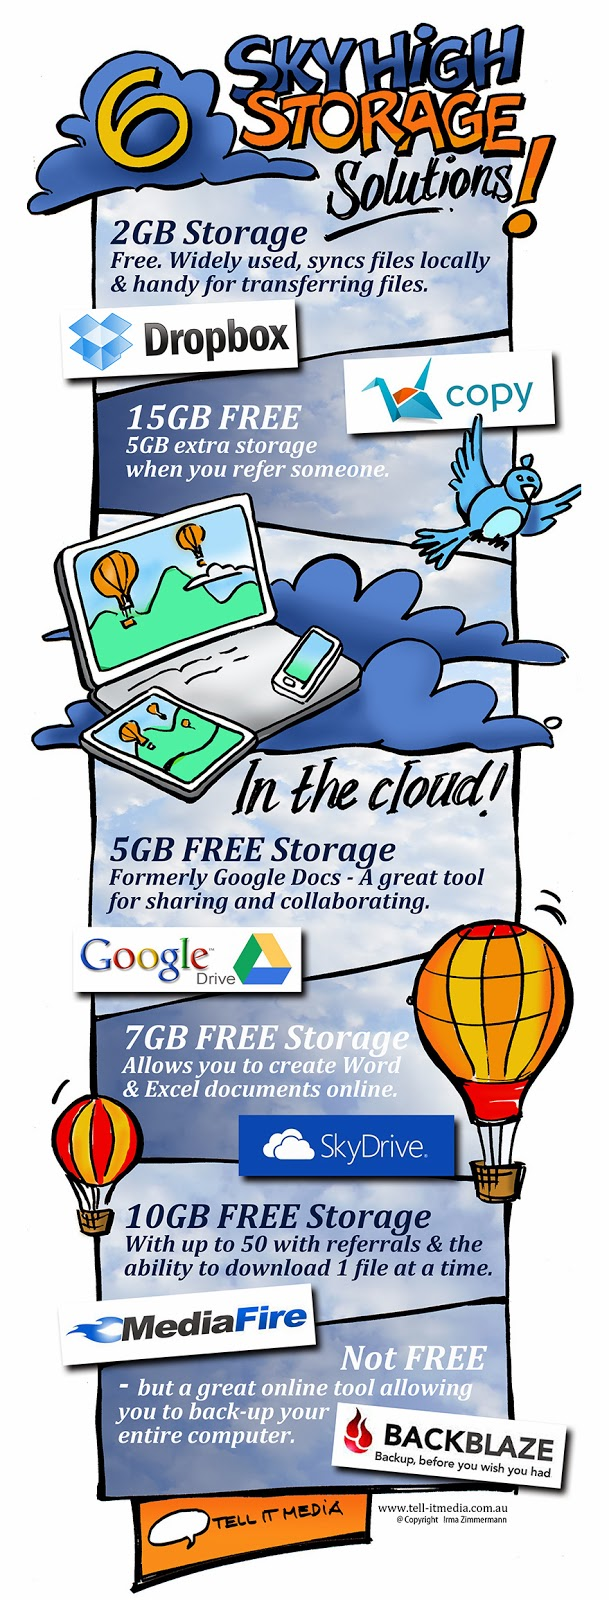 07 In-the-Cloud-Storage-Solutions-Back-up_m